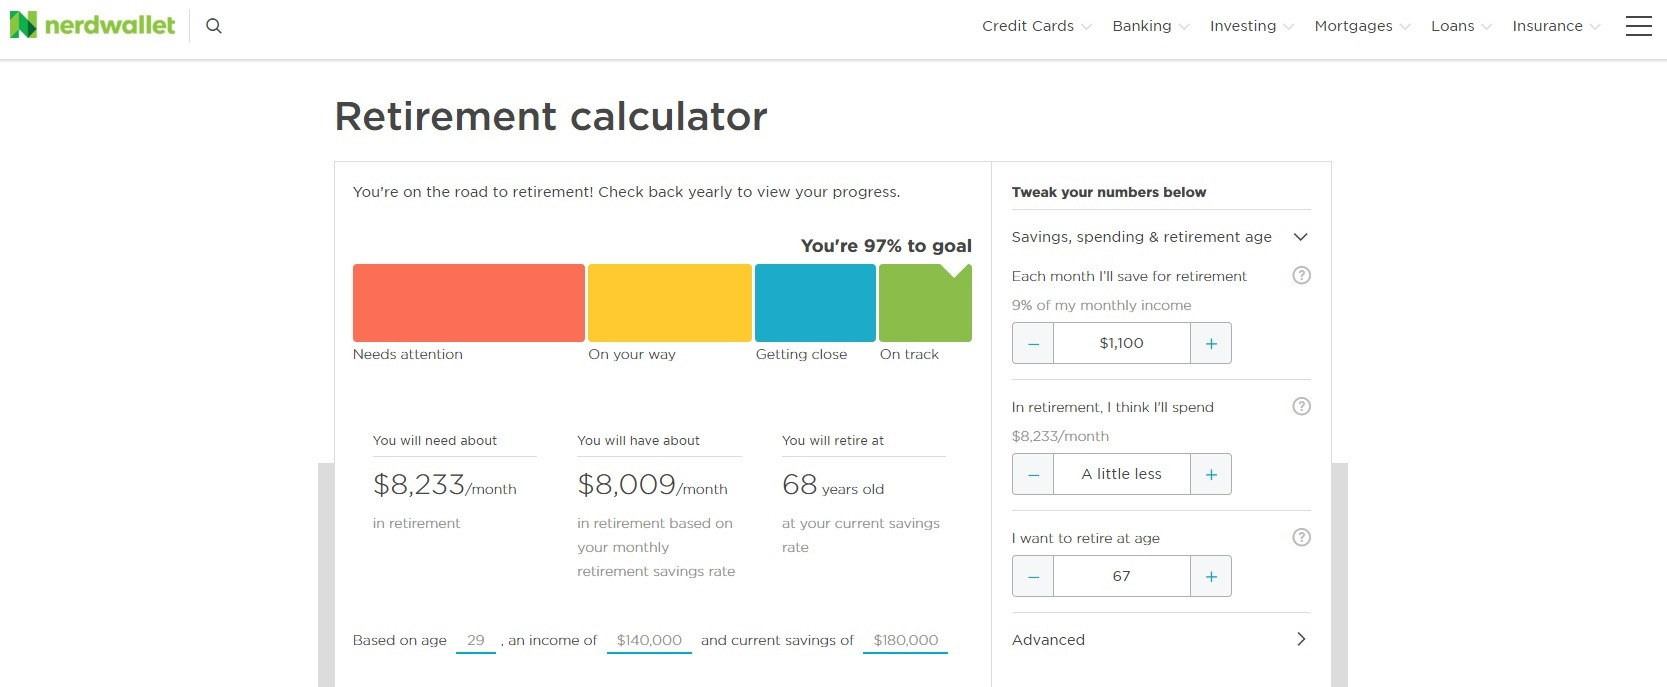 This Dead Simple Retirement Calculator Tells You How Much to Save Monthly 5